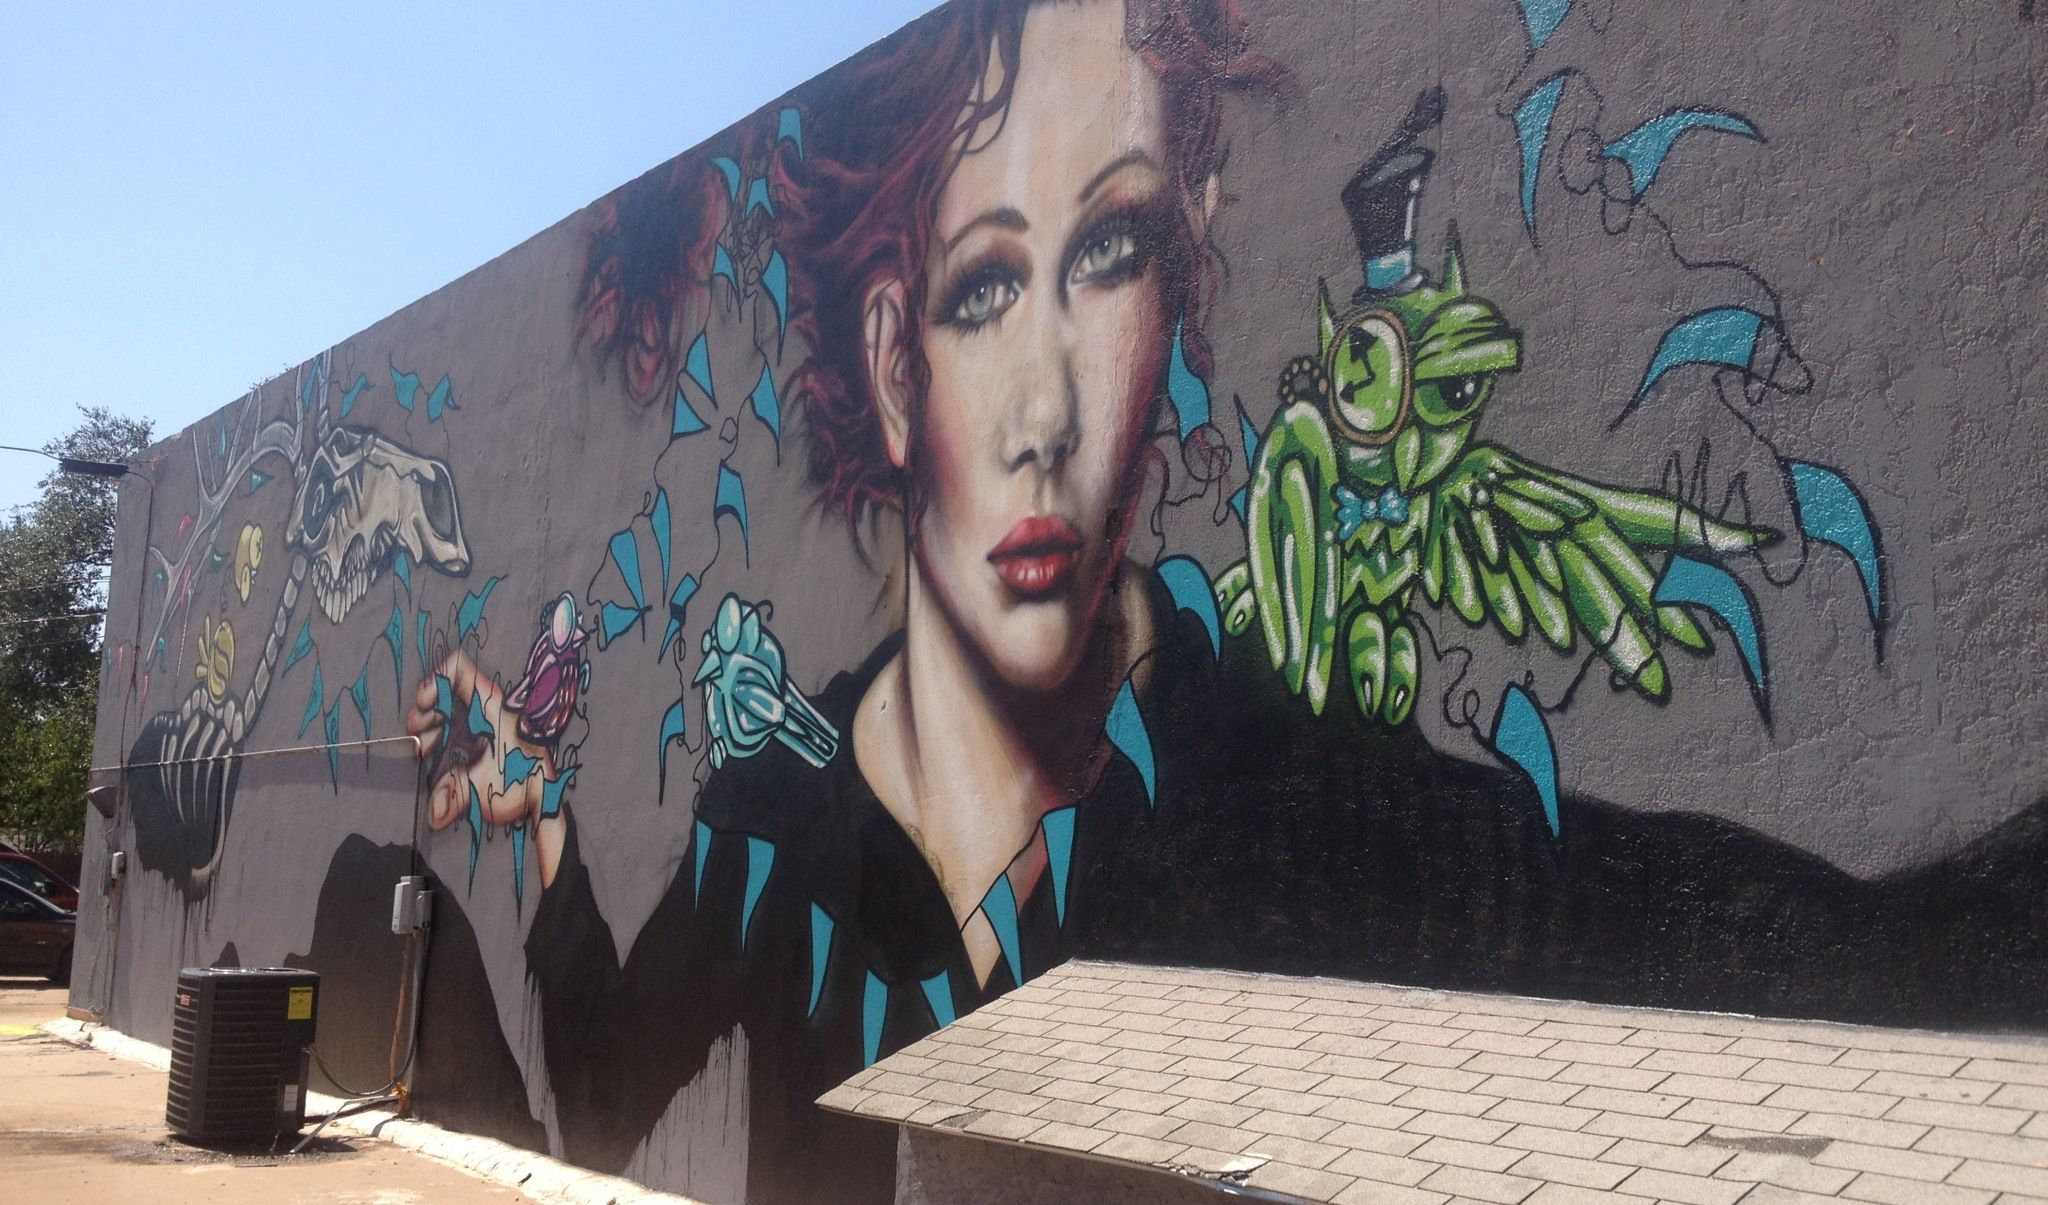 Check out some of the amazing street art here in lubbock this mural can be found just outside of culture clothing